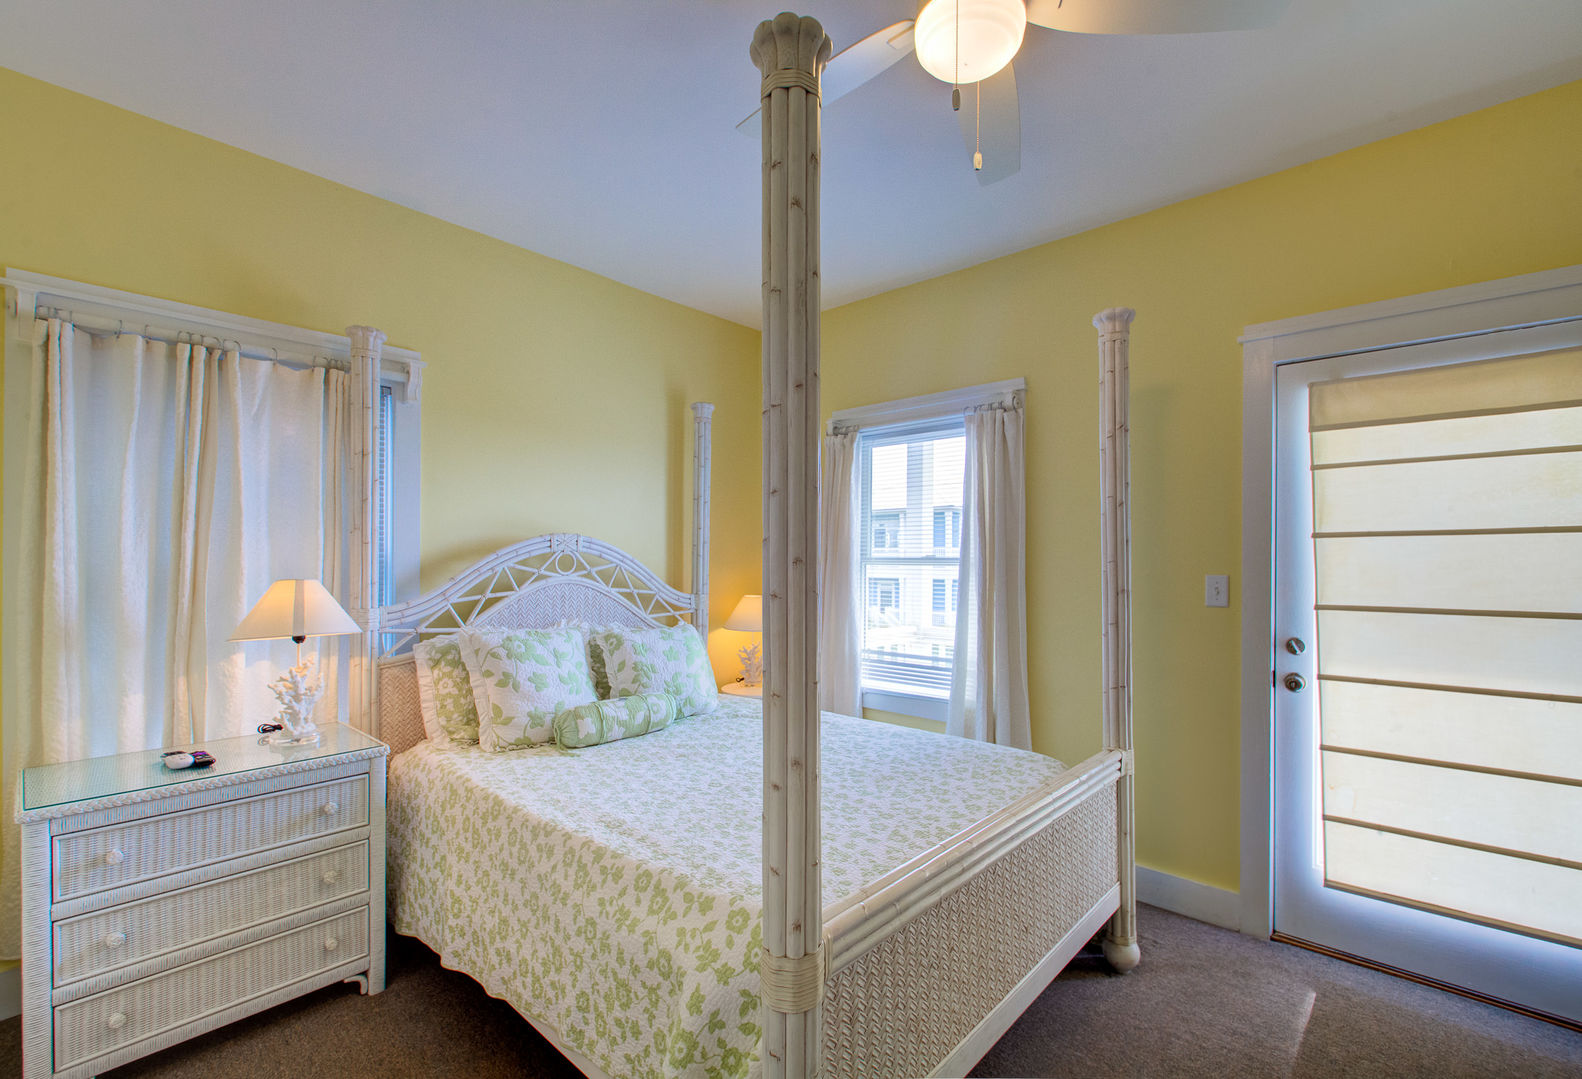 Large Bed, Nightstands, Lamps, Windows, and Door to the Balcony.